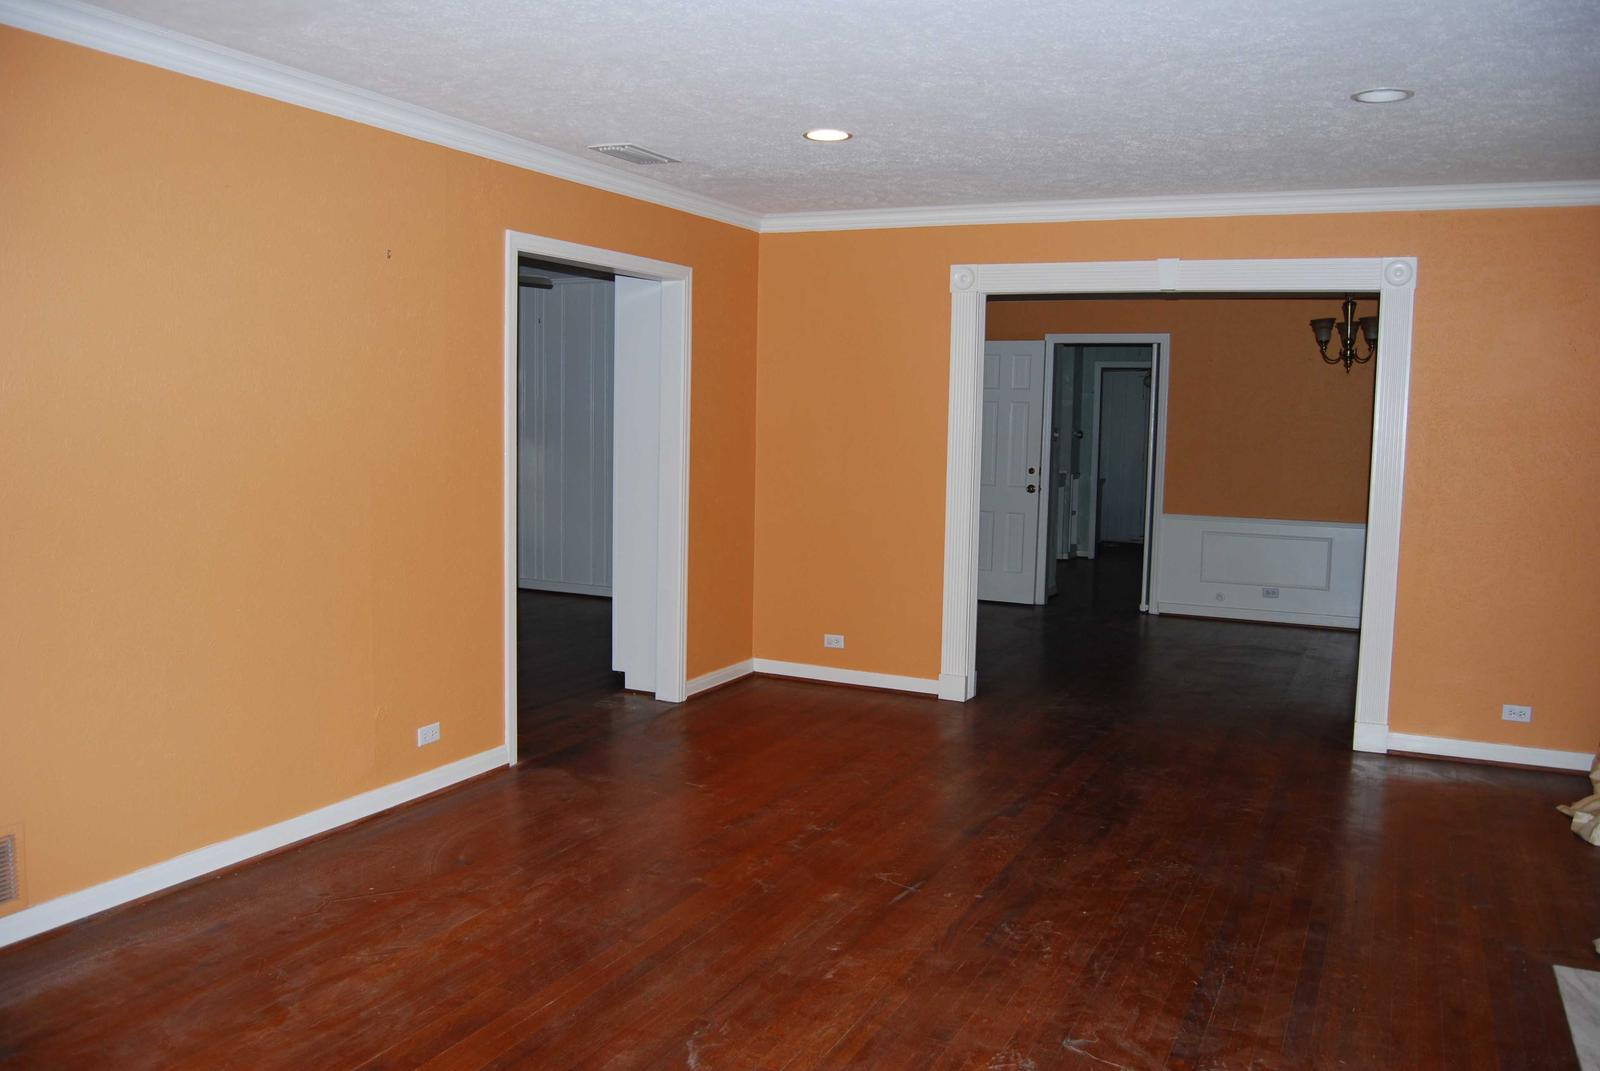 Look at pics and help suggest wall color hardwood floors paint ceiling home interior Paint wall colours